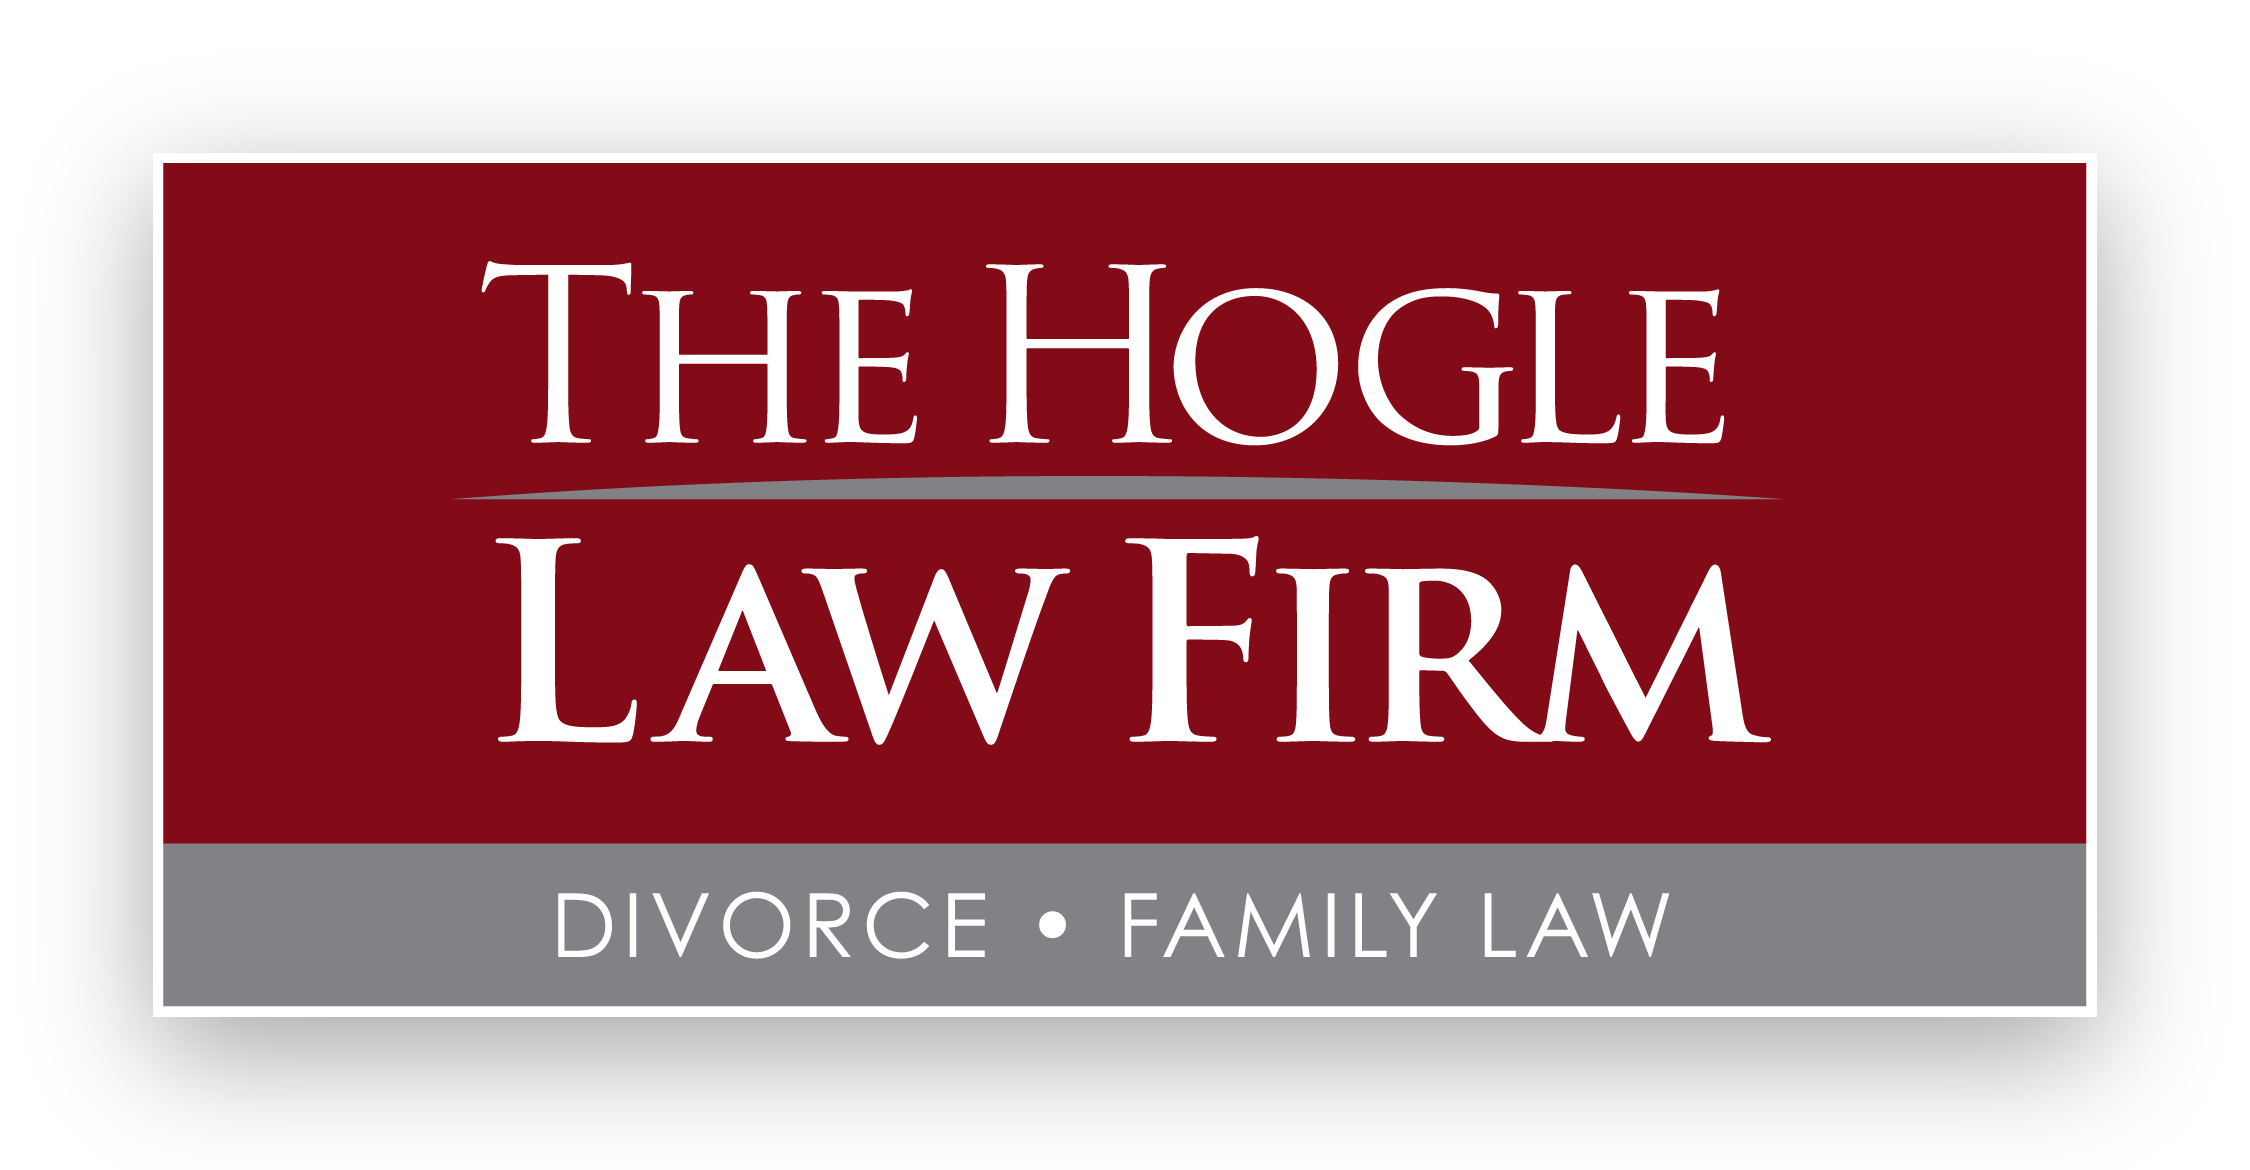 Hogle Family Law - Divorce Attornies in Chandler AZ